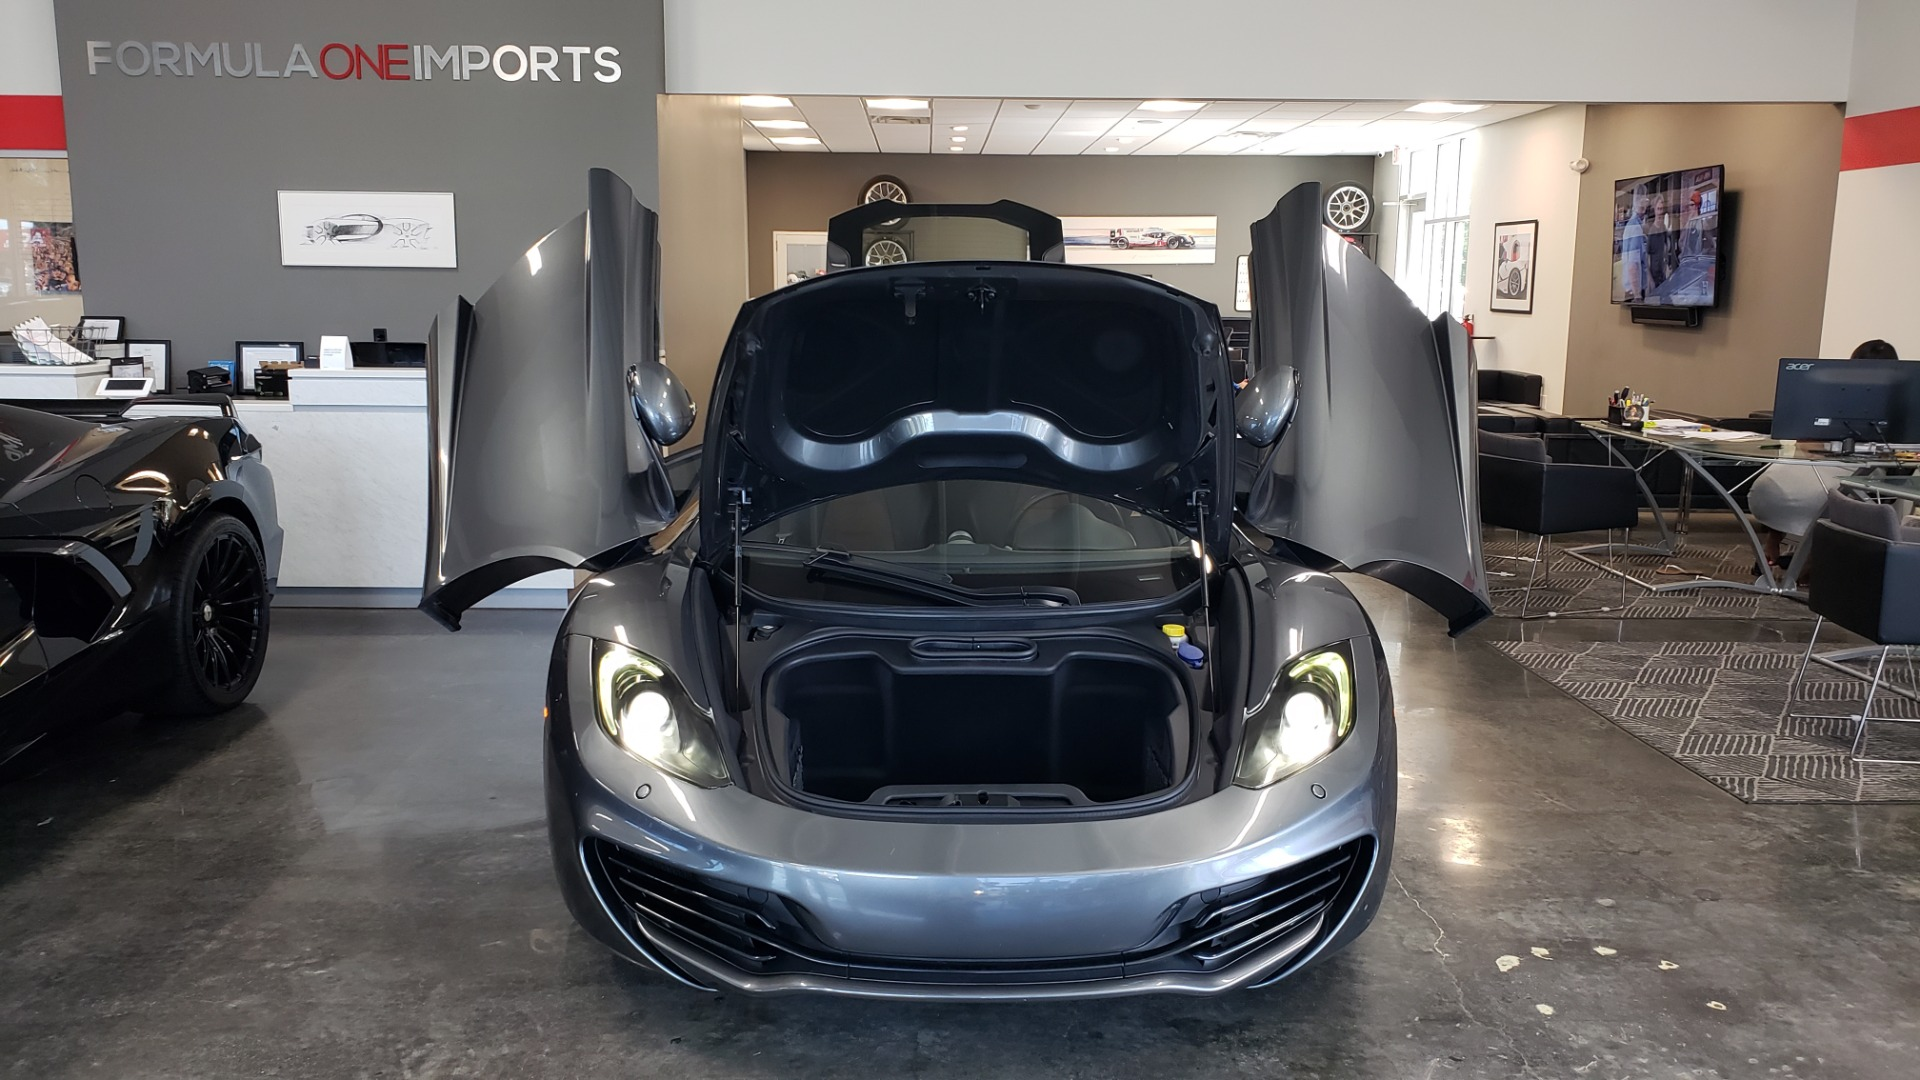 Used 2012 McLaren MP4-12C COUPE / 3.8 L V8 592HP / AUTO / NAV / CCB / LOW MILES for sale $97,999 at Formula Imports in Charlotte NC 28227 83